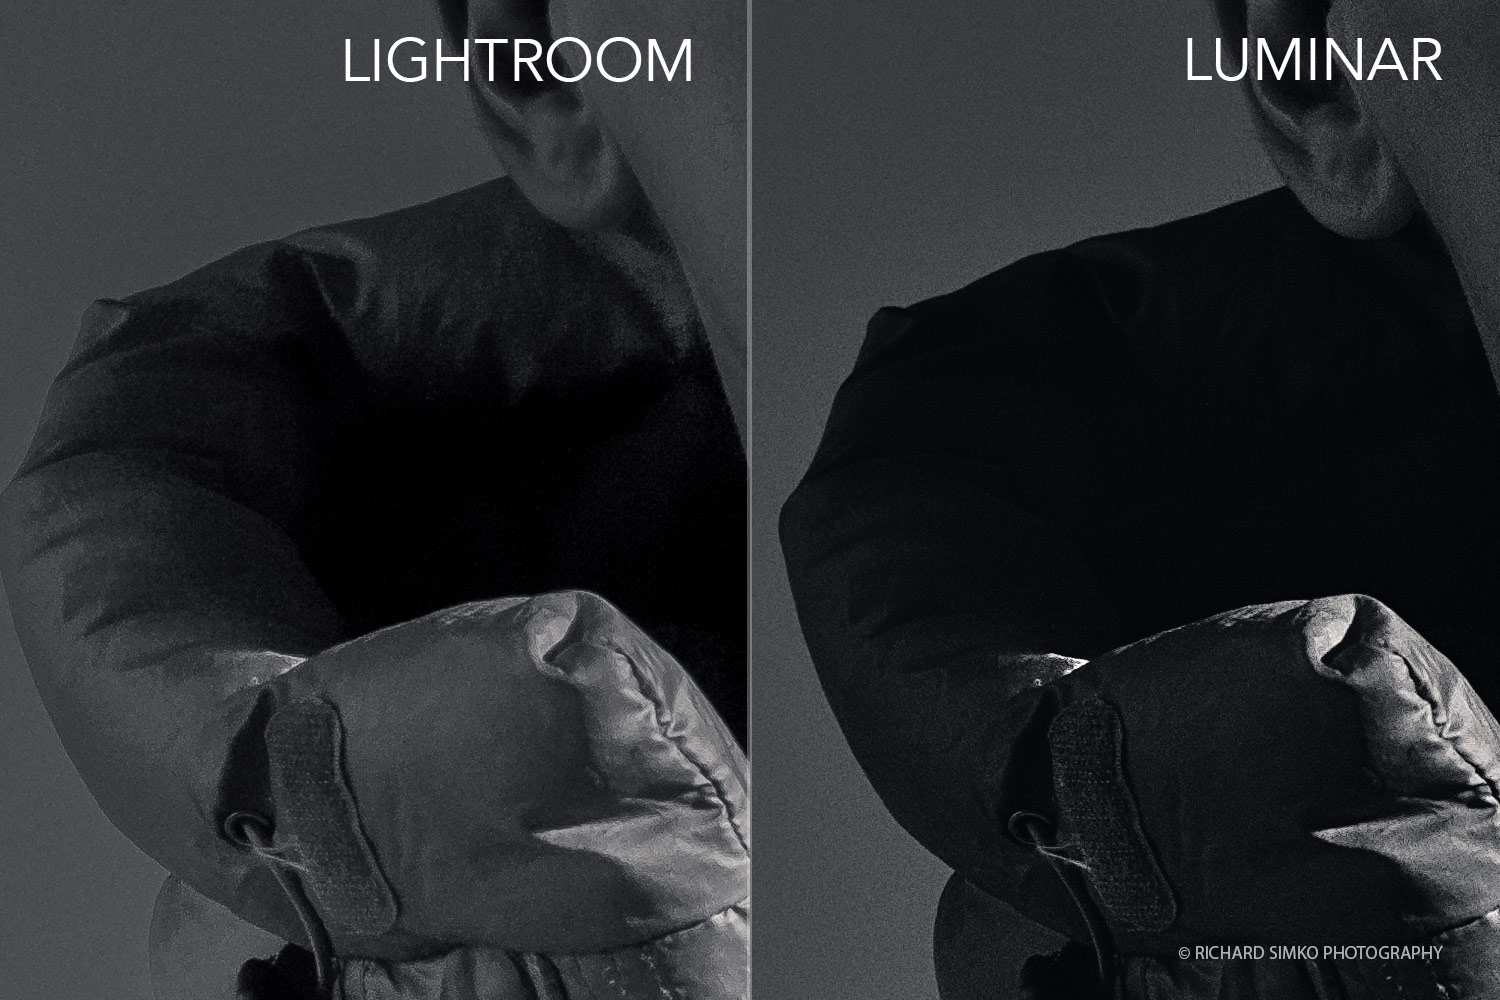 Lightroom vs Luminar - I was not able to bring back the shadow detail.